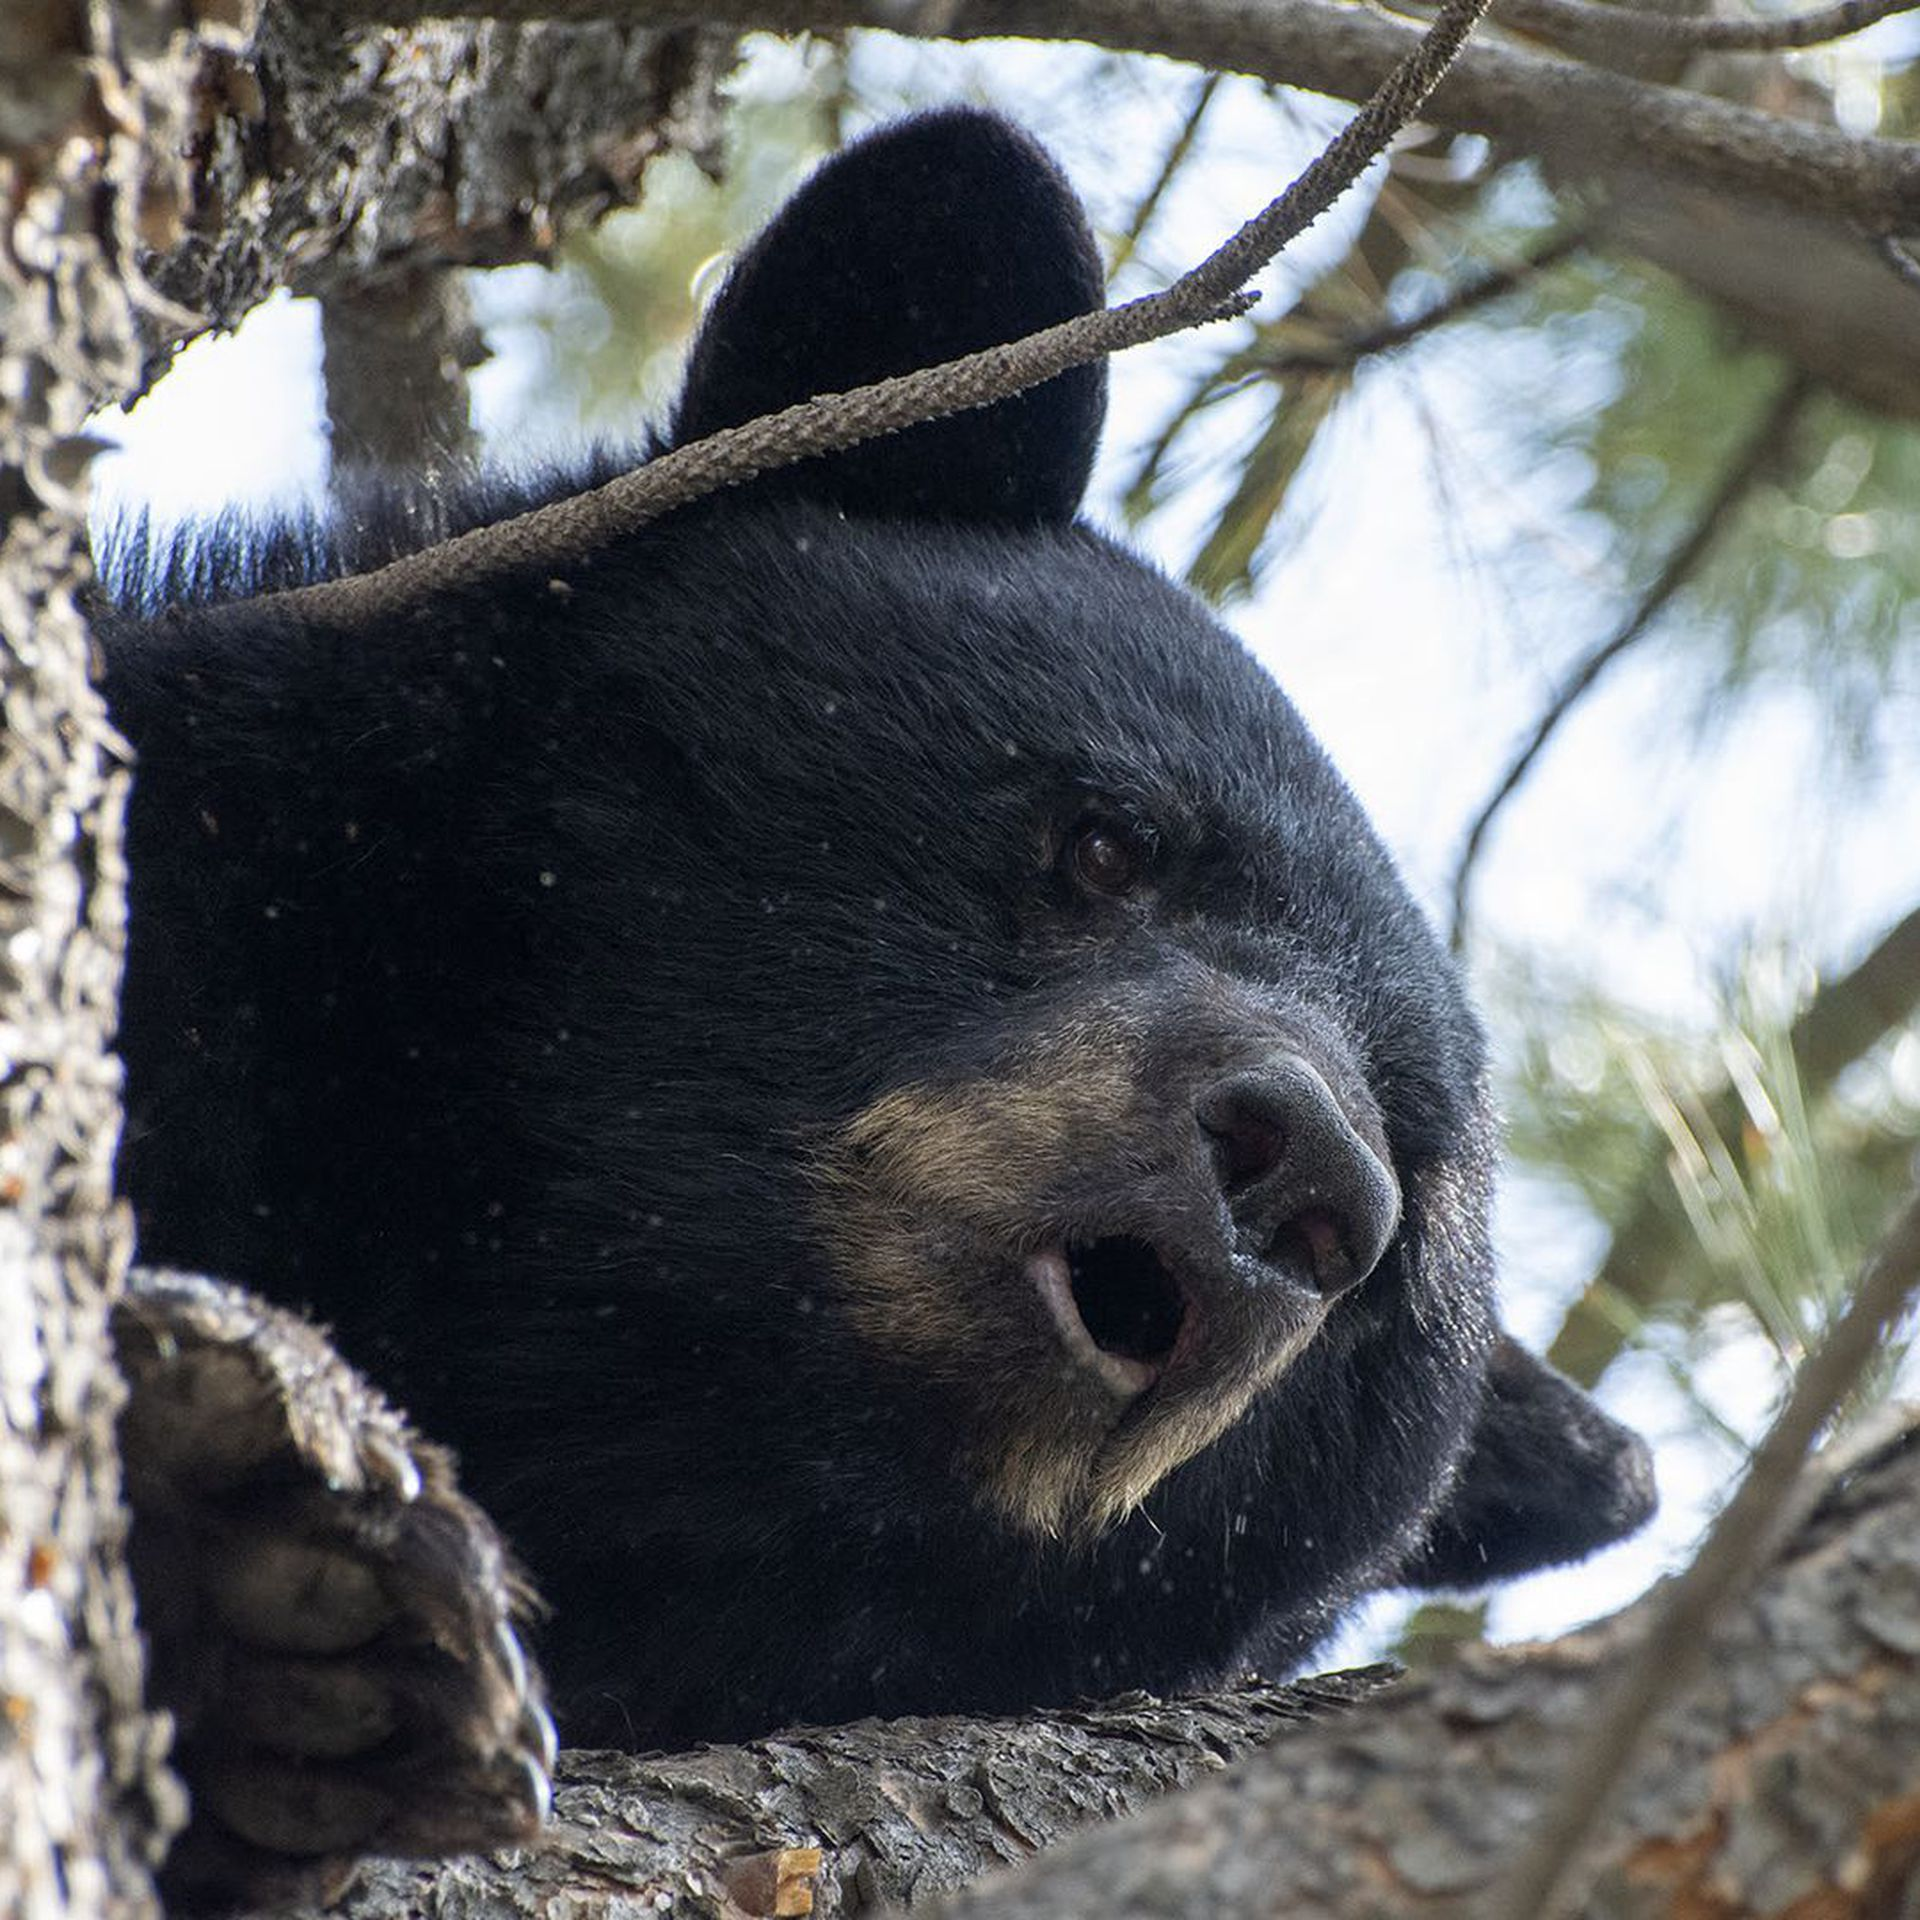 A black bear in a tree near C-470 and South Platte Canyon Road.